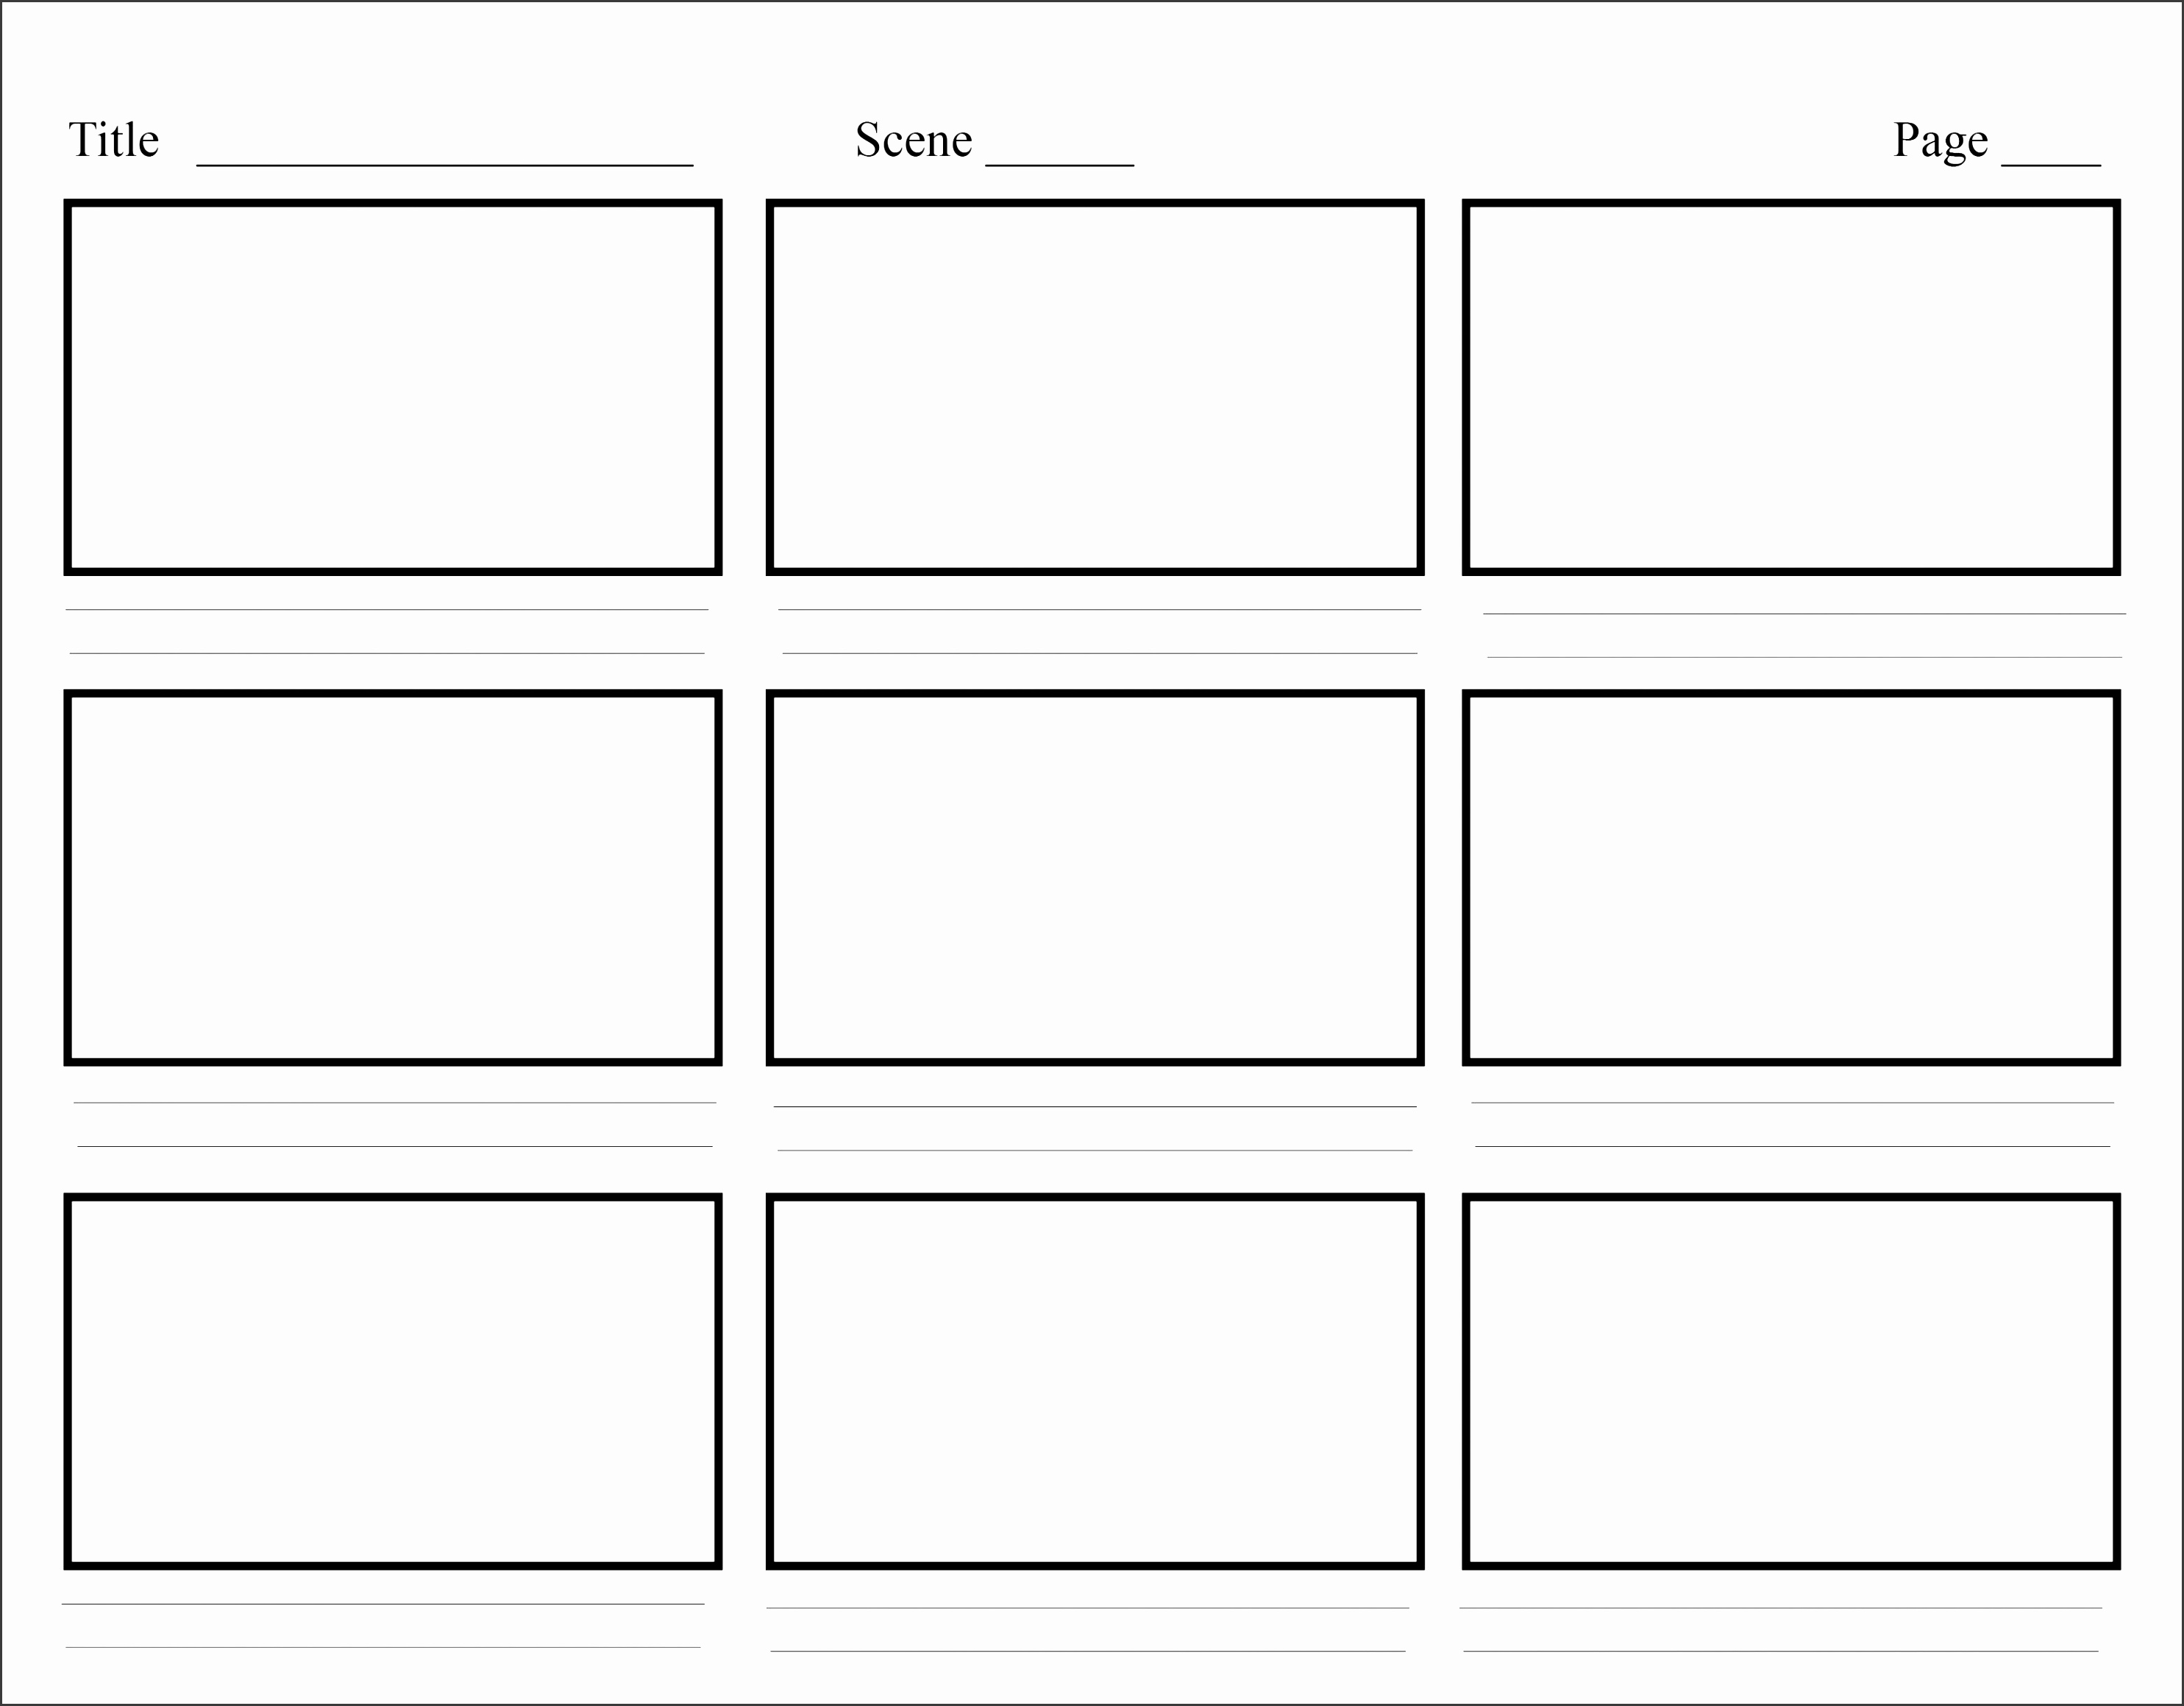 6 Storyboard Template In Word Sampletemplatess